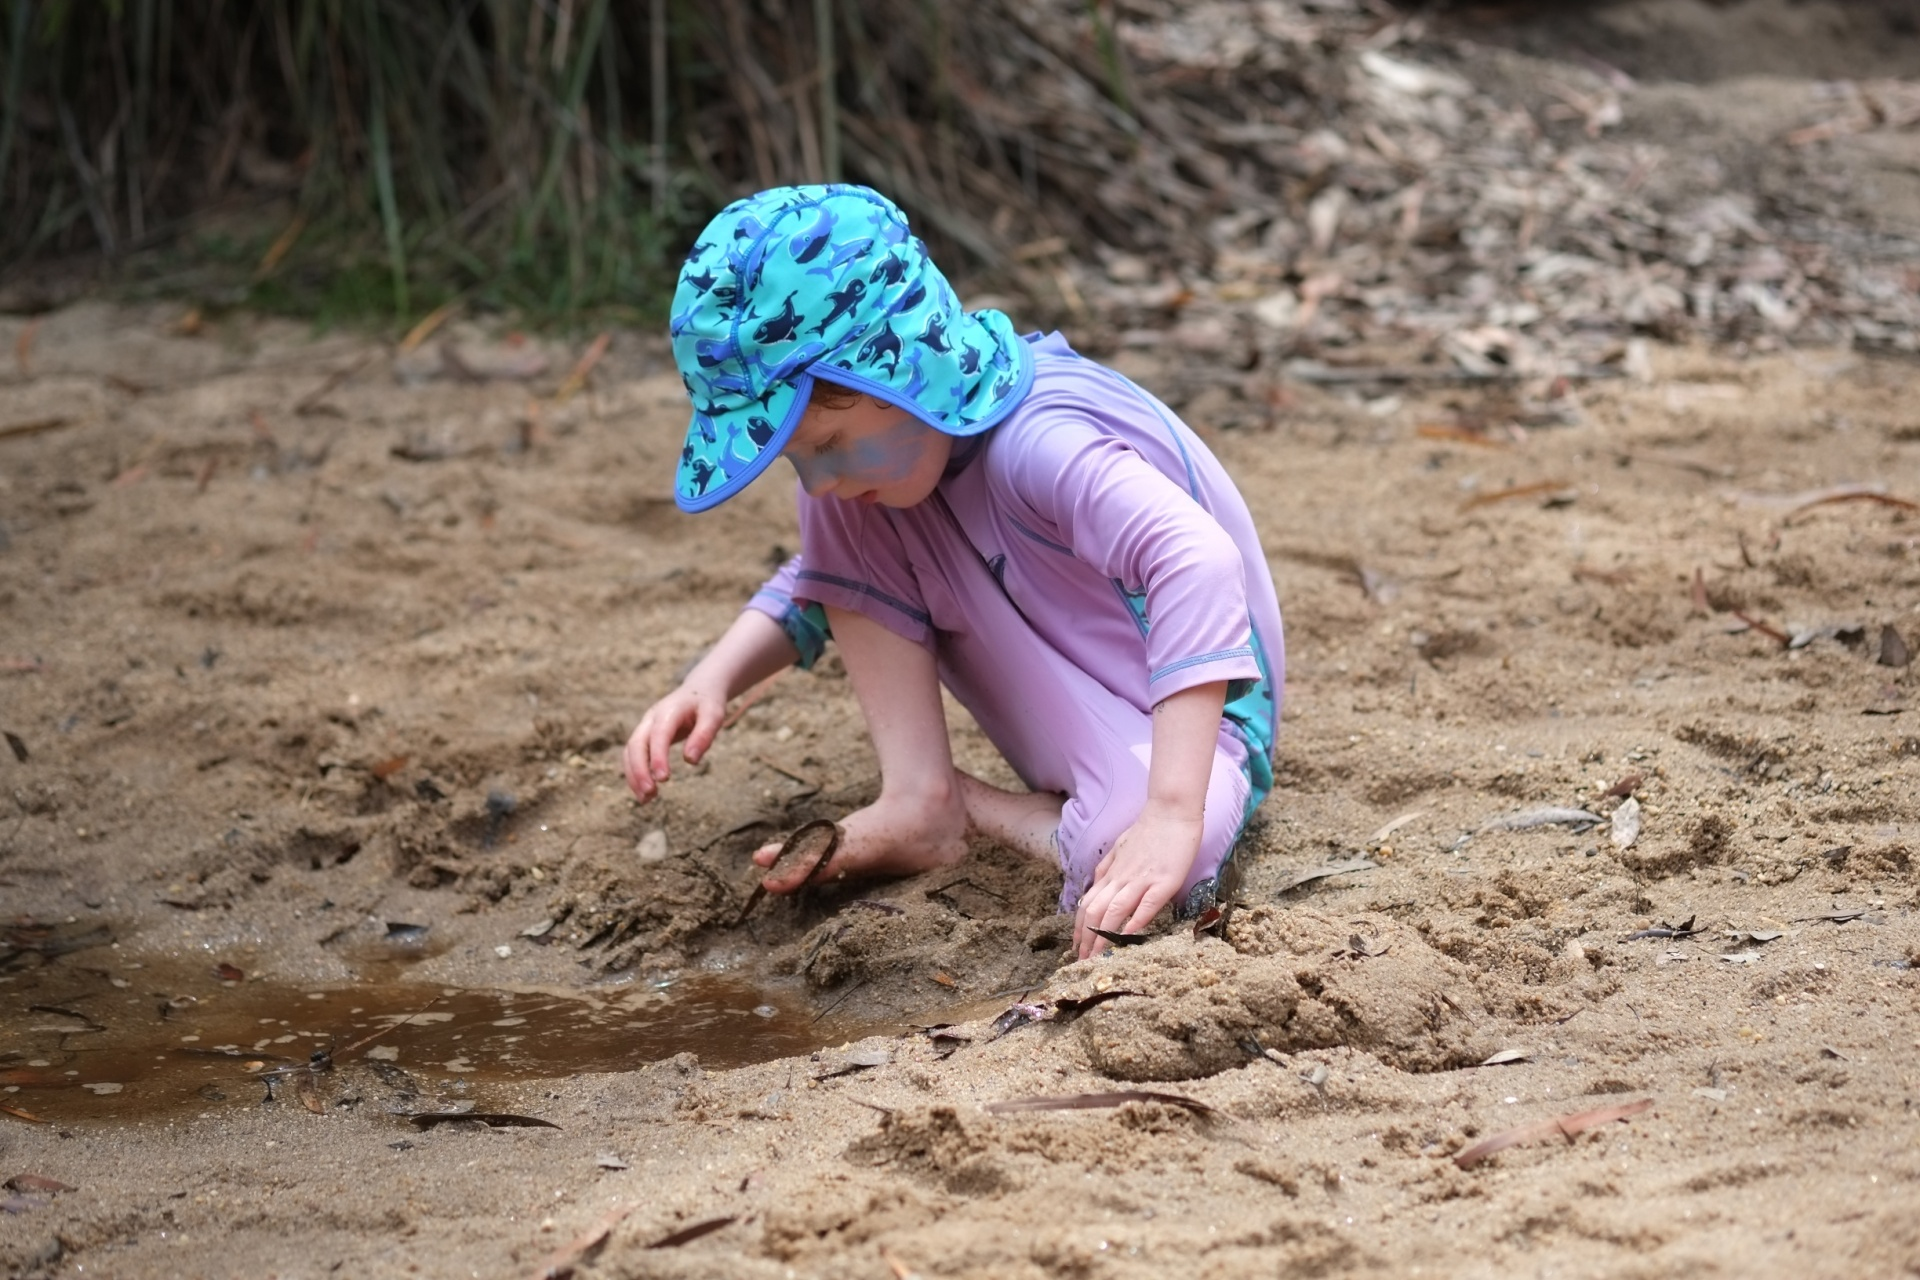 Digging in the sand at Jellybean pool - Fujifilm X-E1 + XF60mmF2.4 Macro